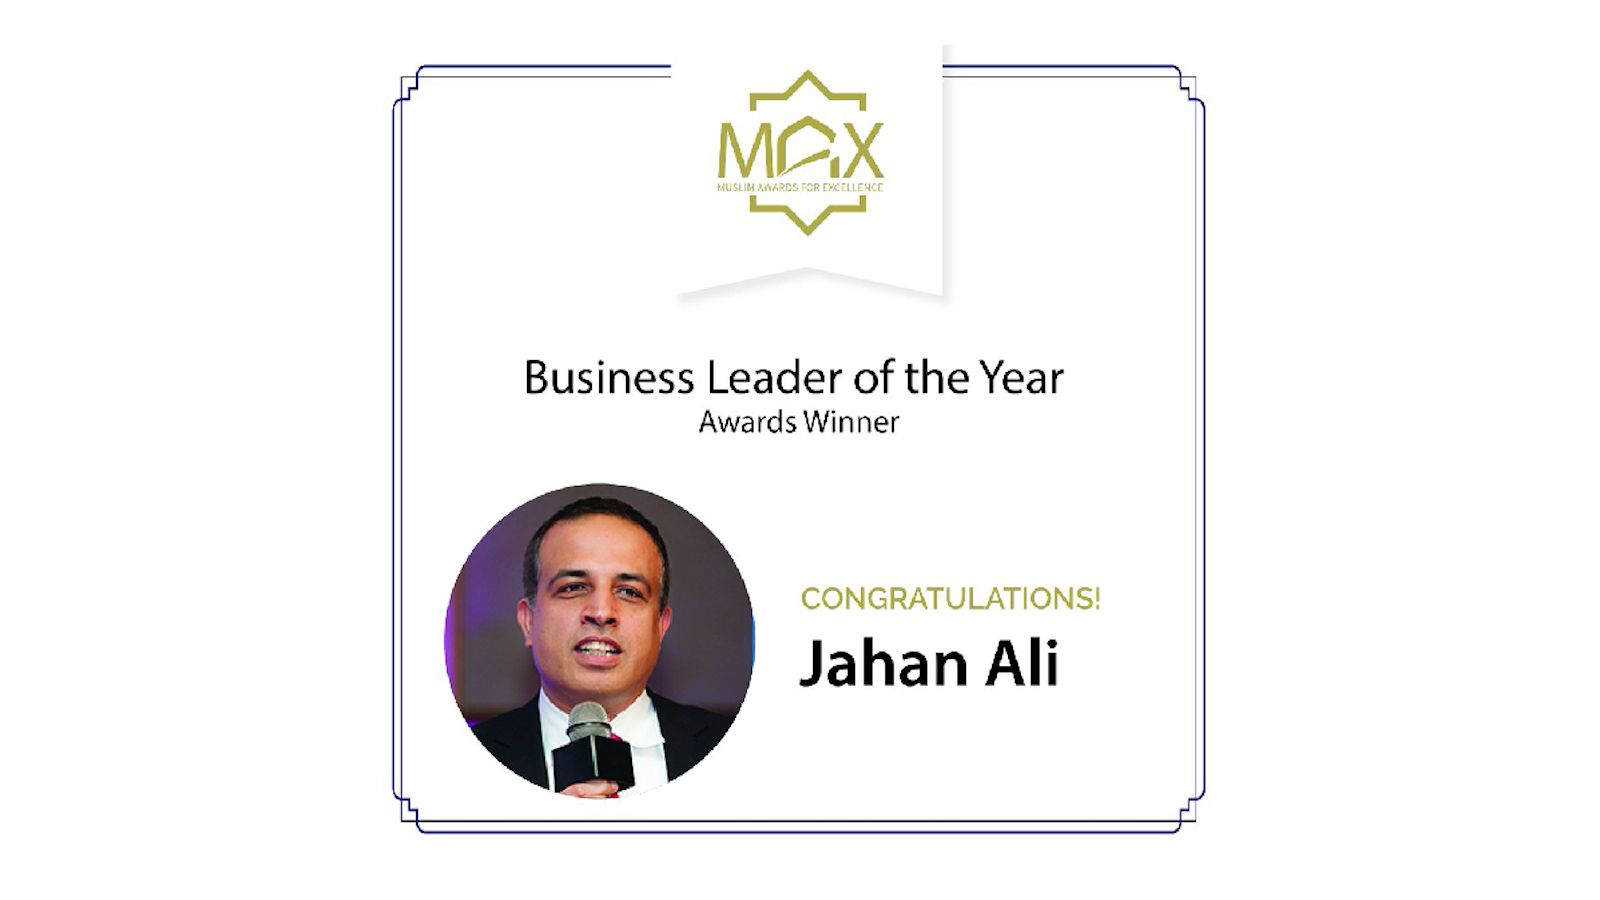 Jahan Ali MAX Business Leader of the Year